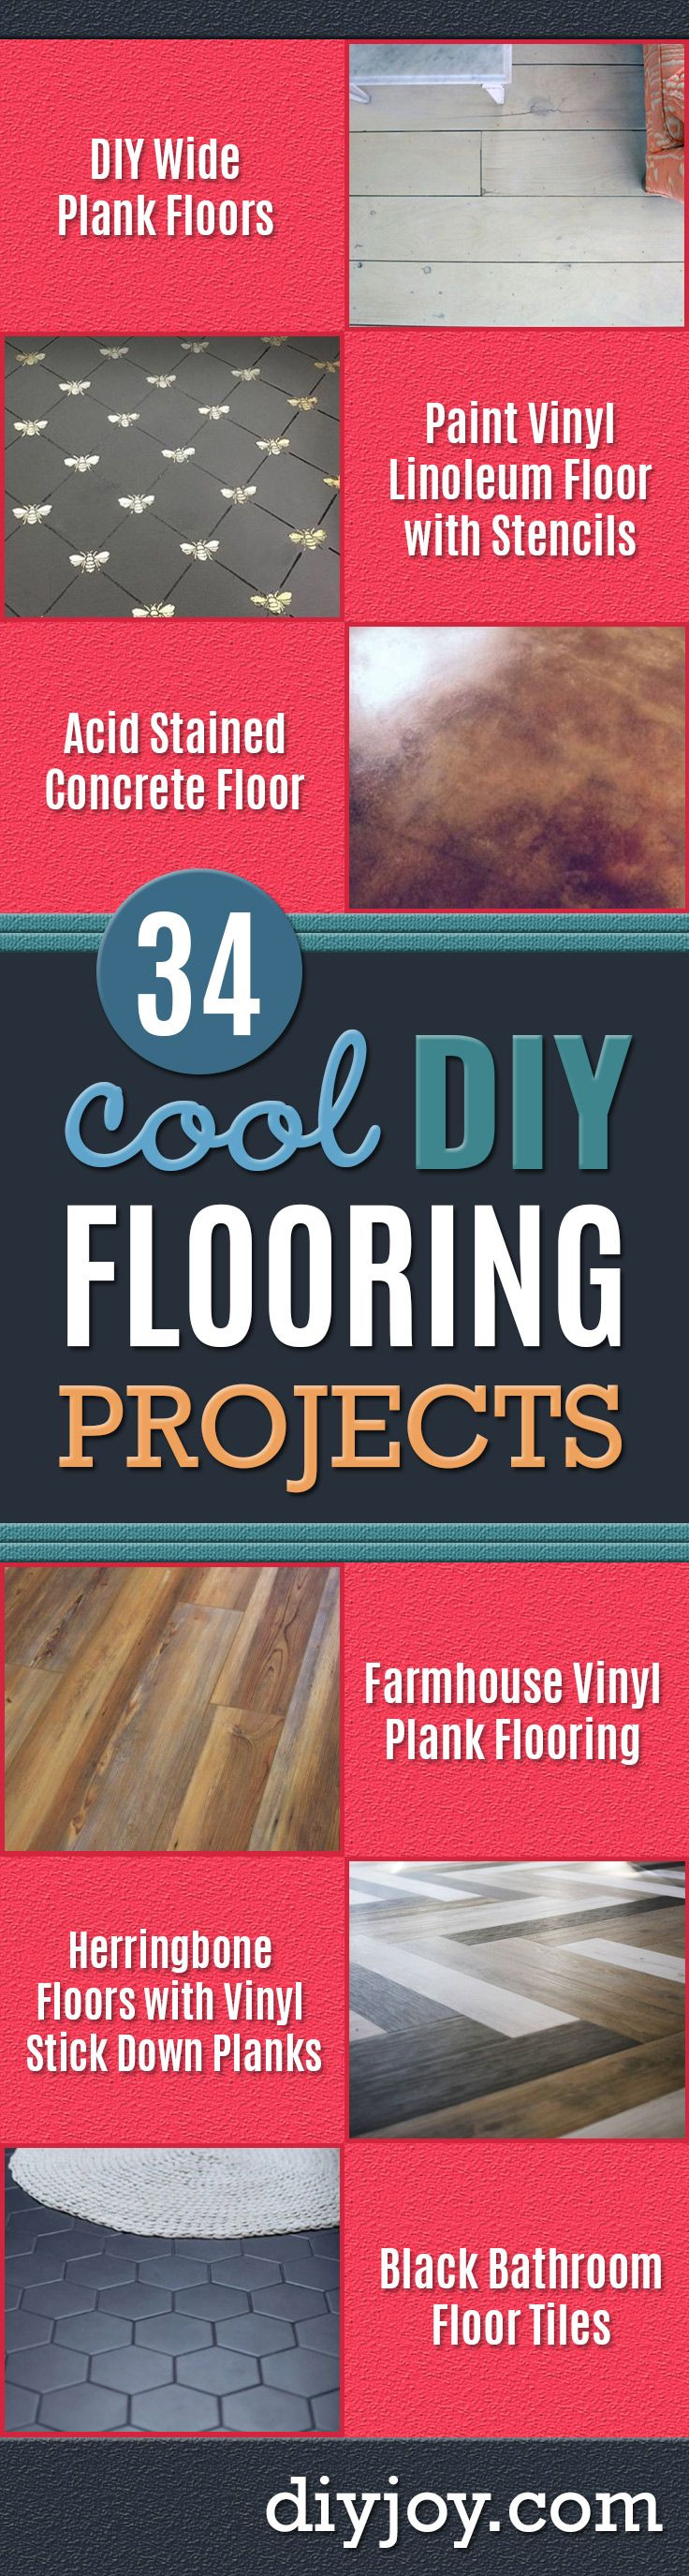 63 best diy flooring images on pinterest home ideas flooring and 34 diy flooring projects that will transform your home solutioingenieria Gallery